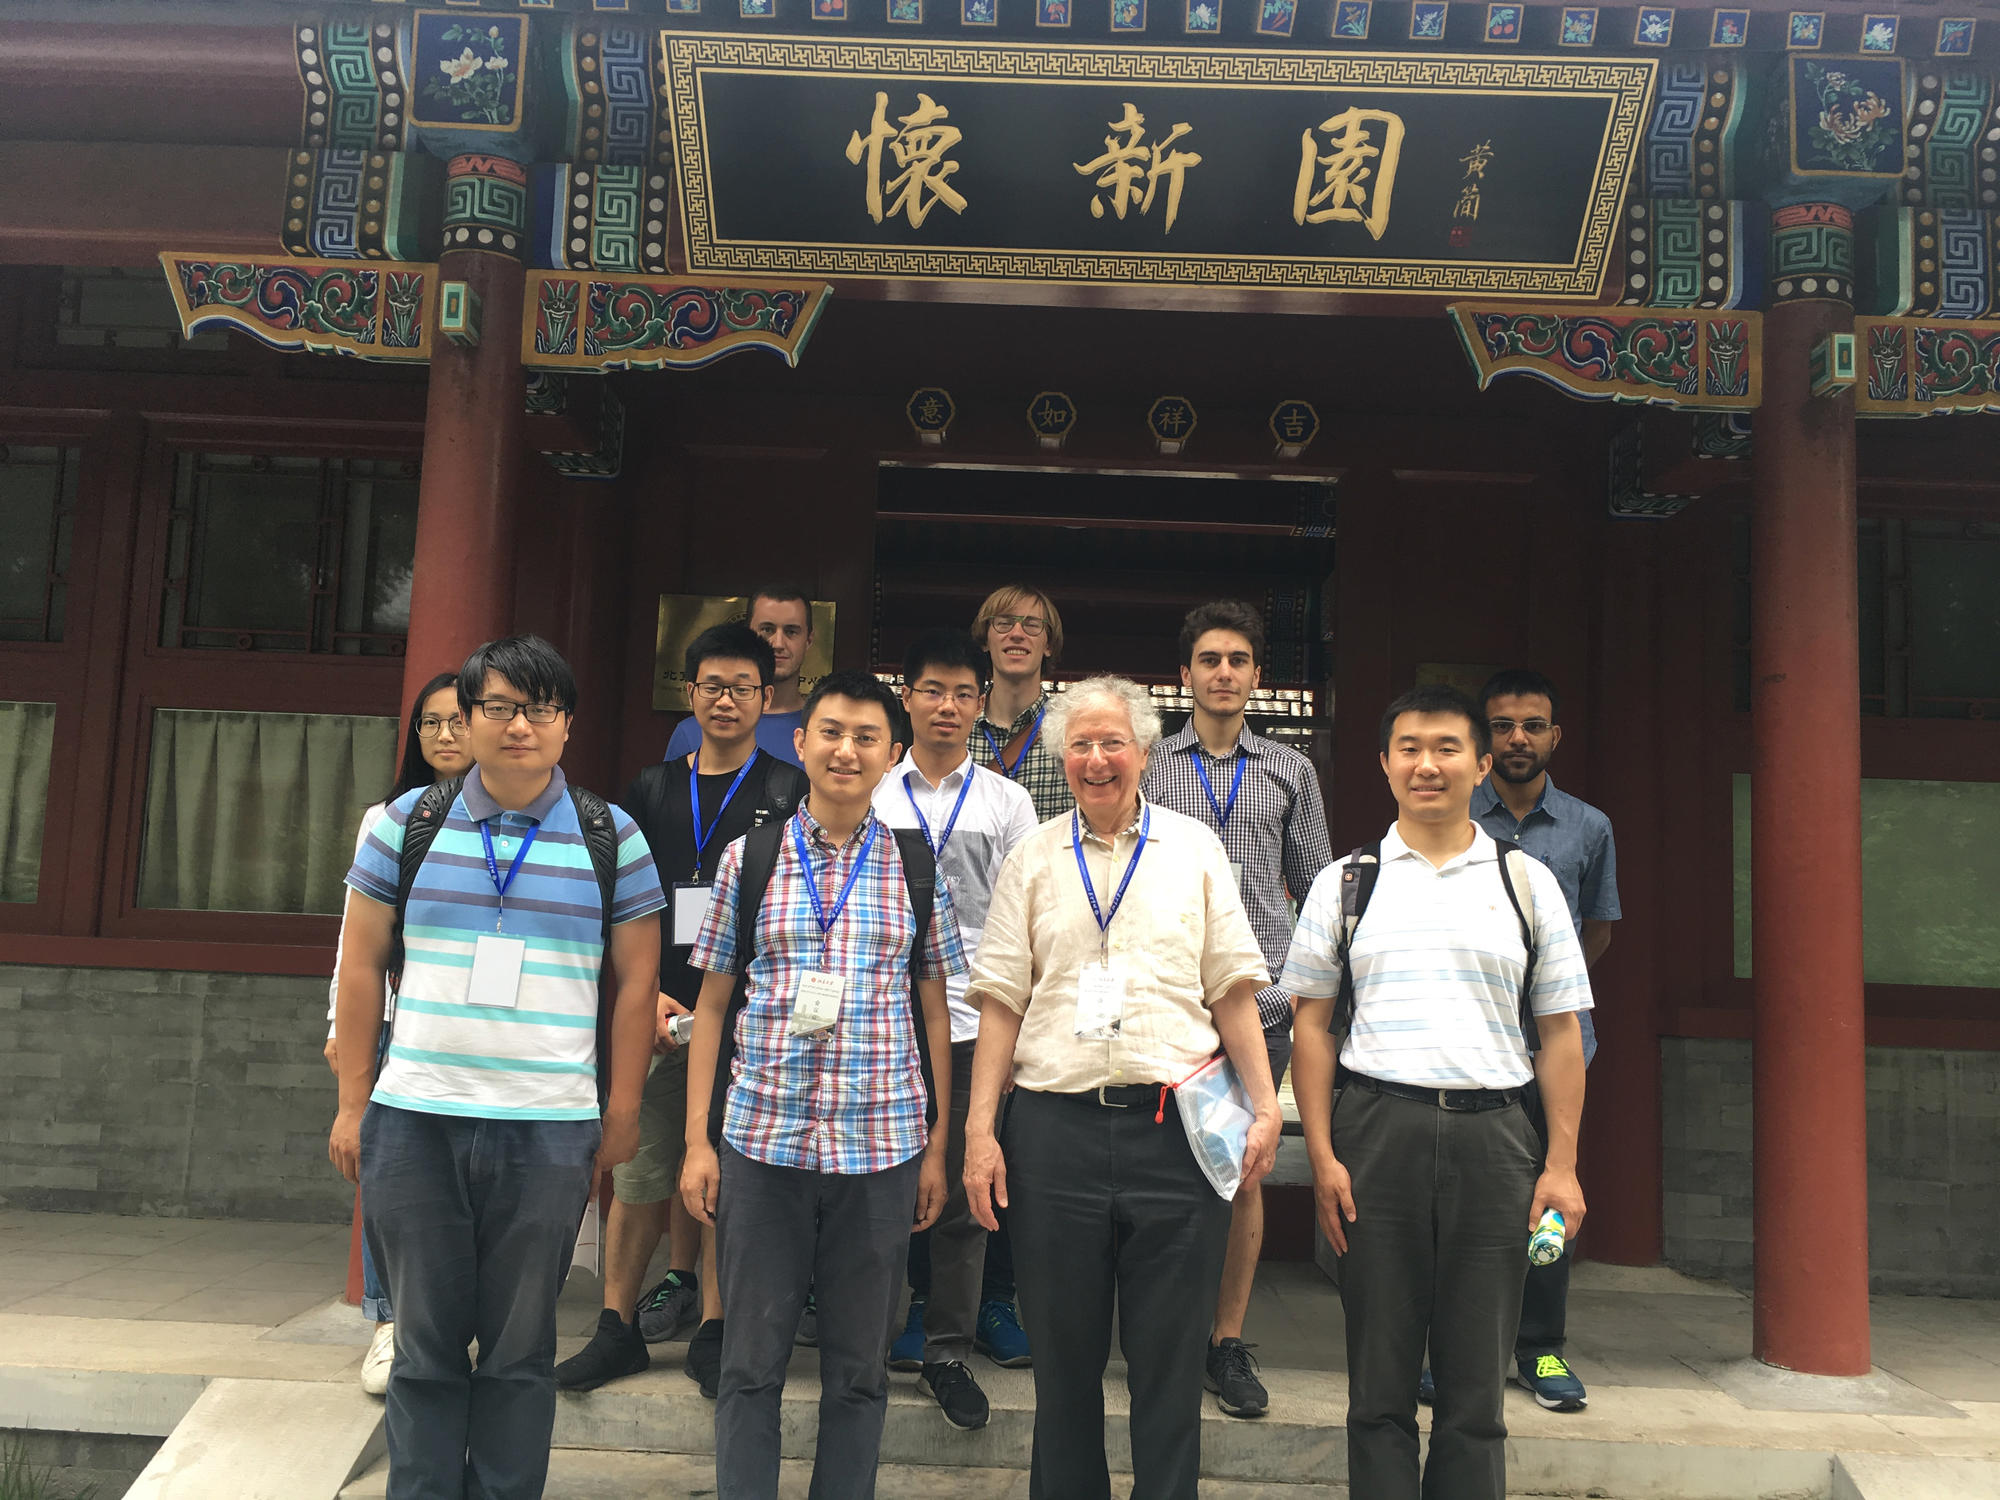 The group, at a historic building during our excursion to Peking University and the Beijing International Center for Mathematical Research